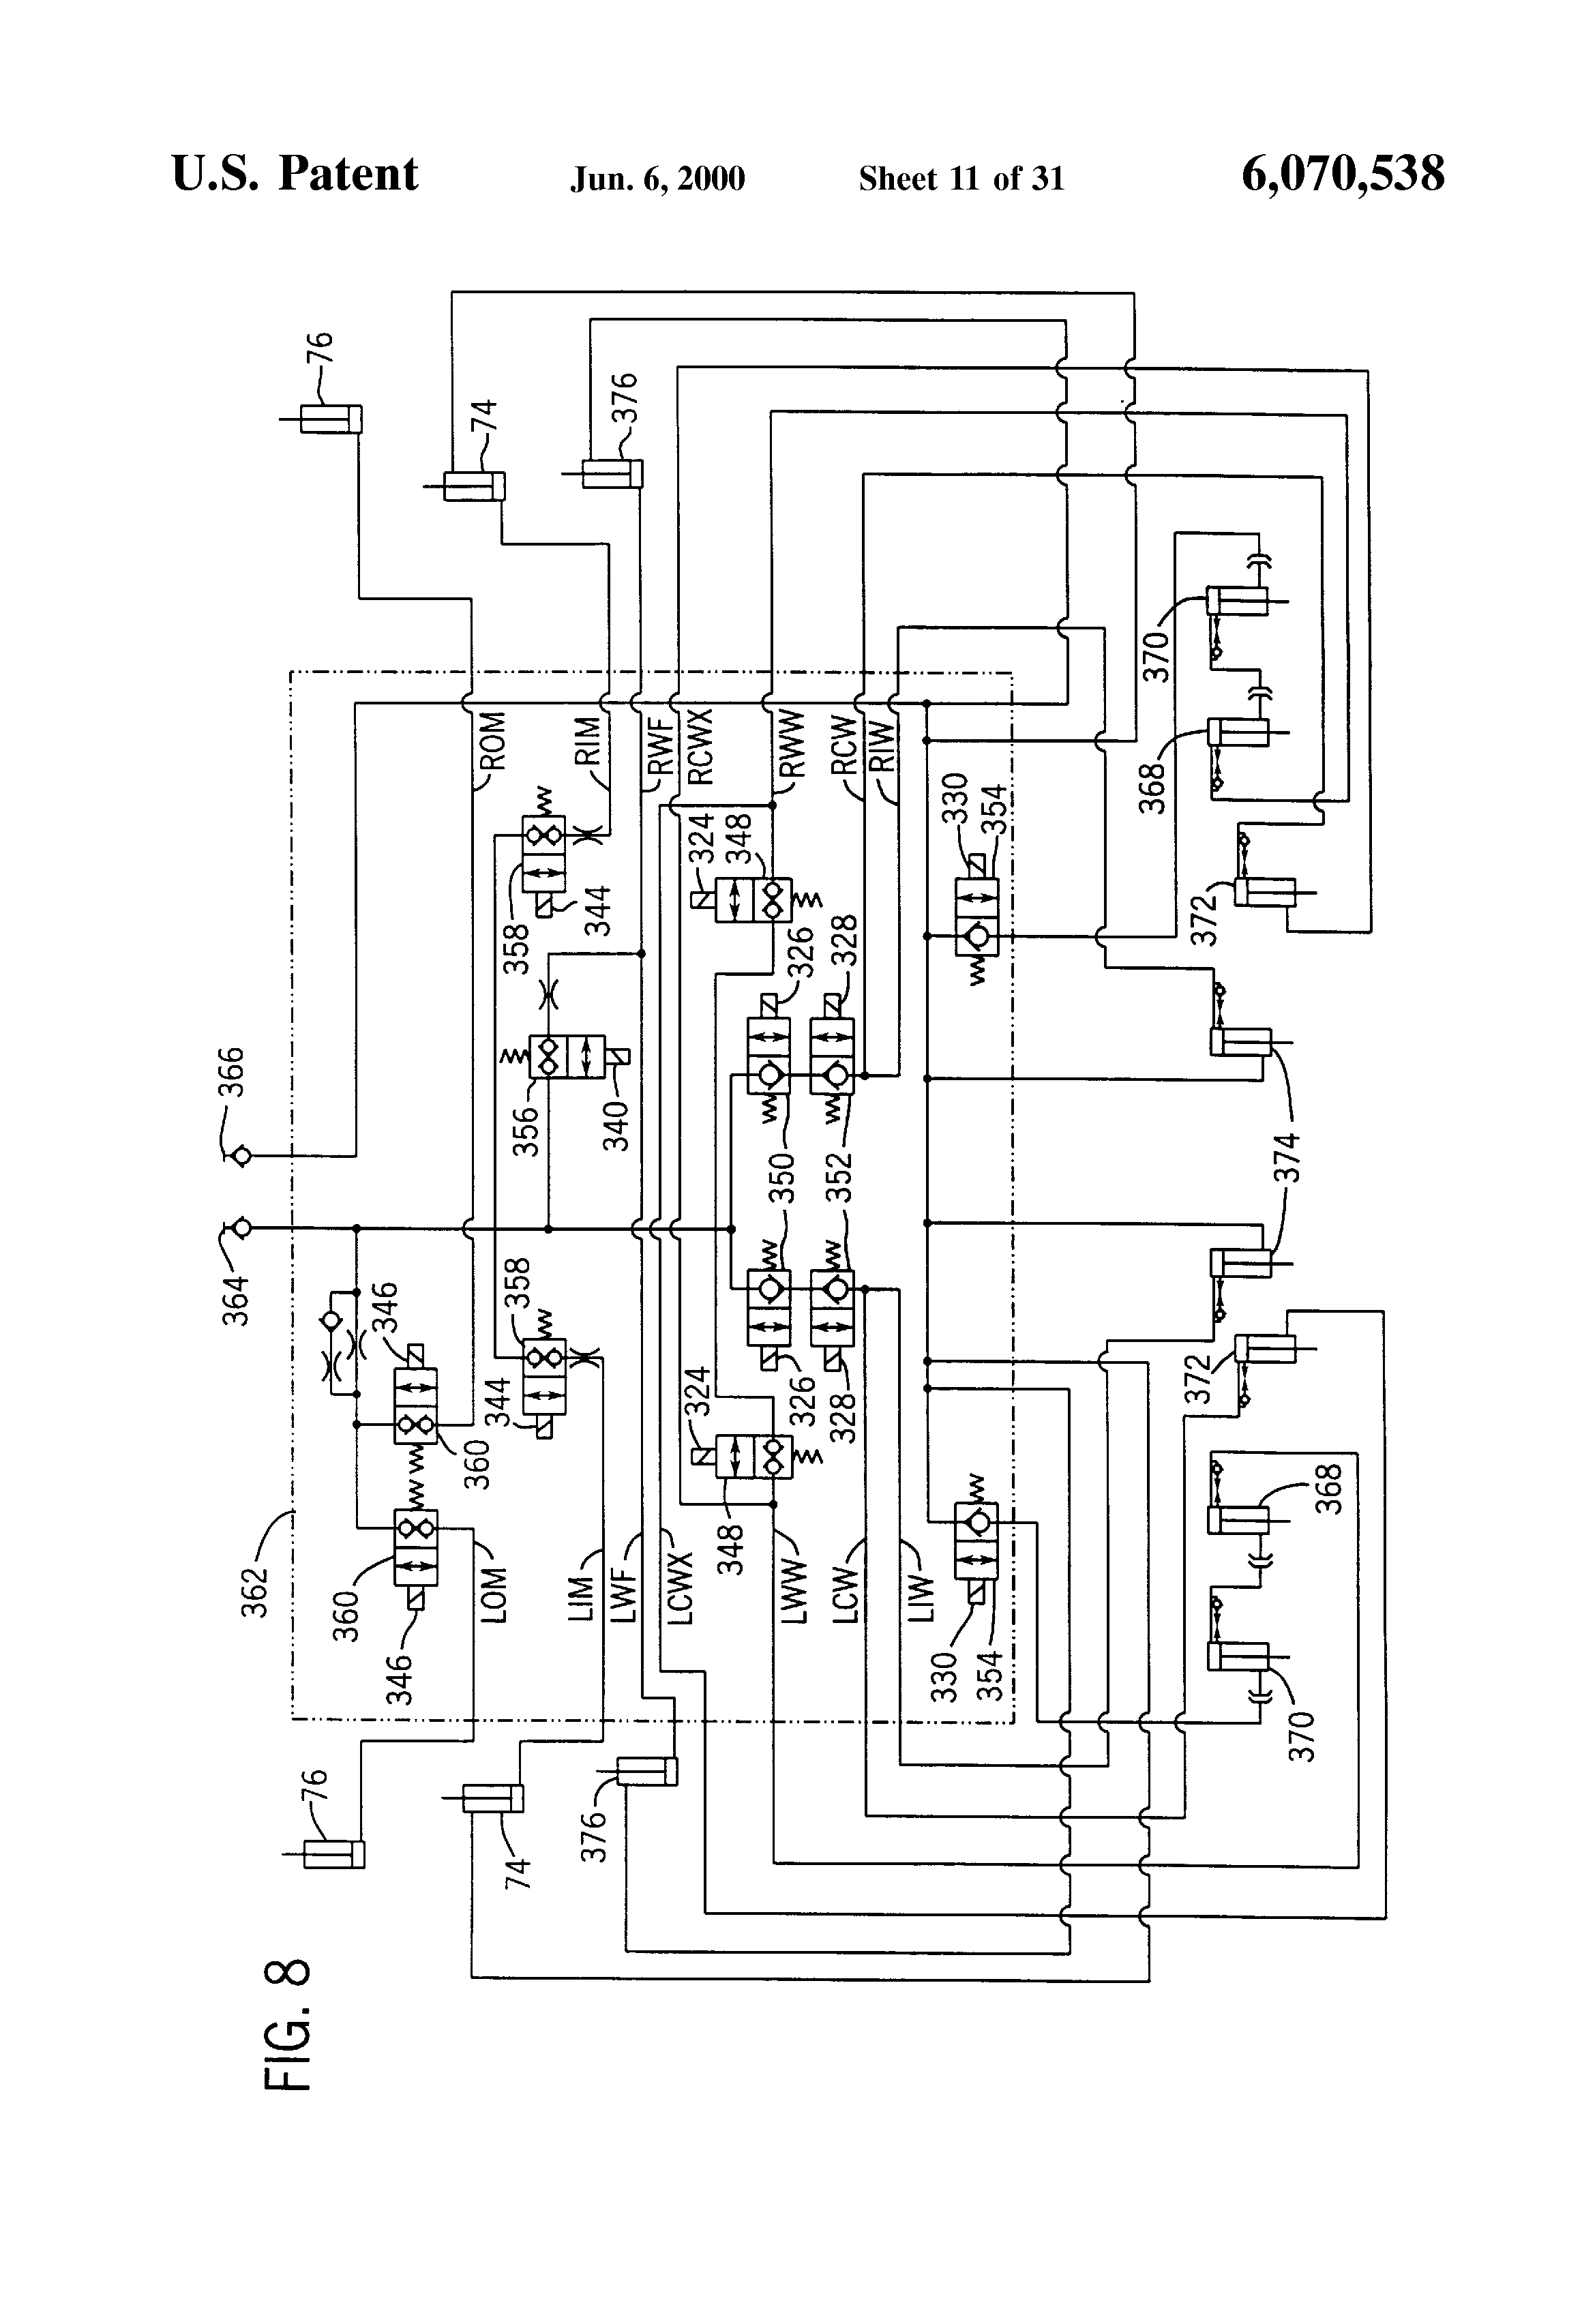 US6070538 12 patent us6070538 modular agricultural implement control system john deere 310a wiring diagram at aneh.co